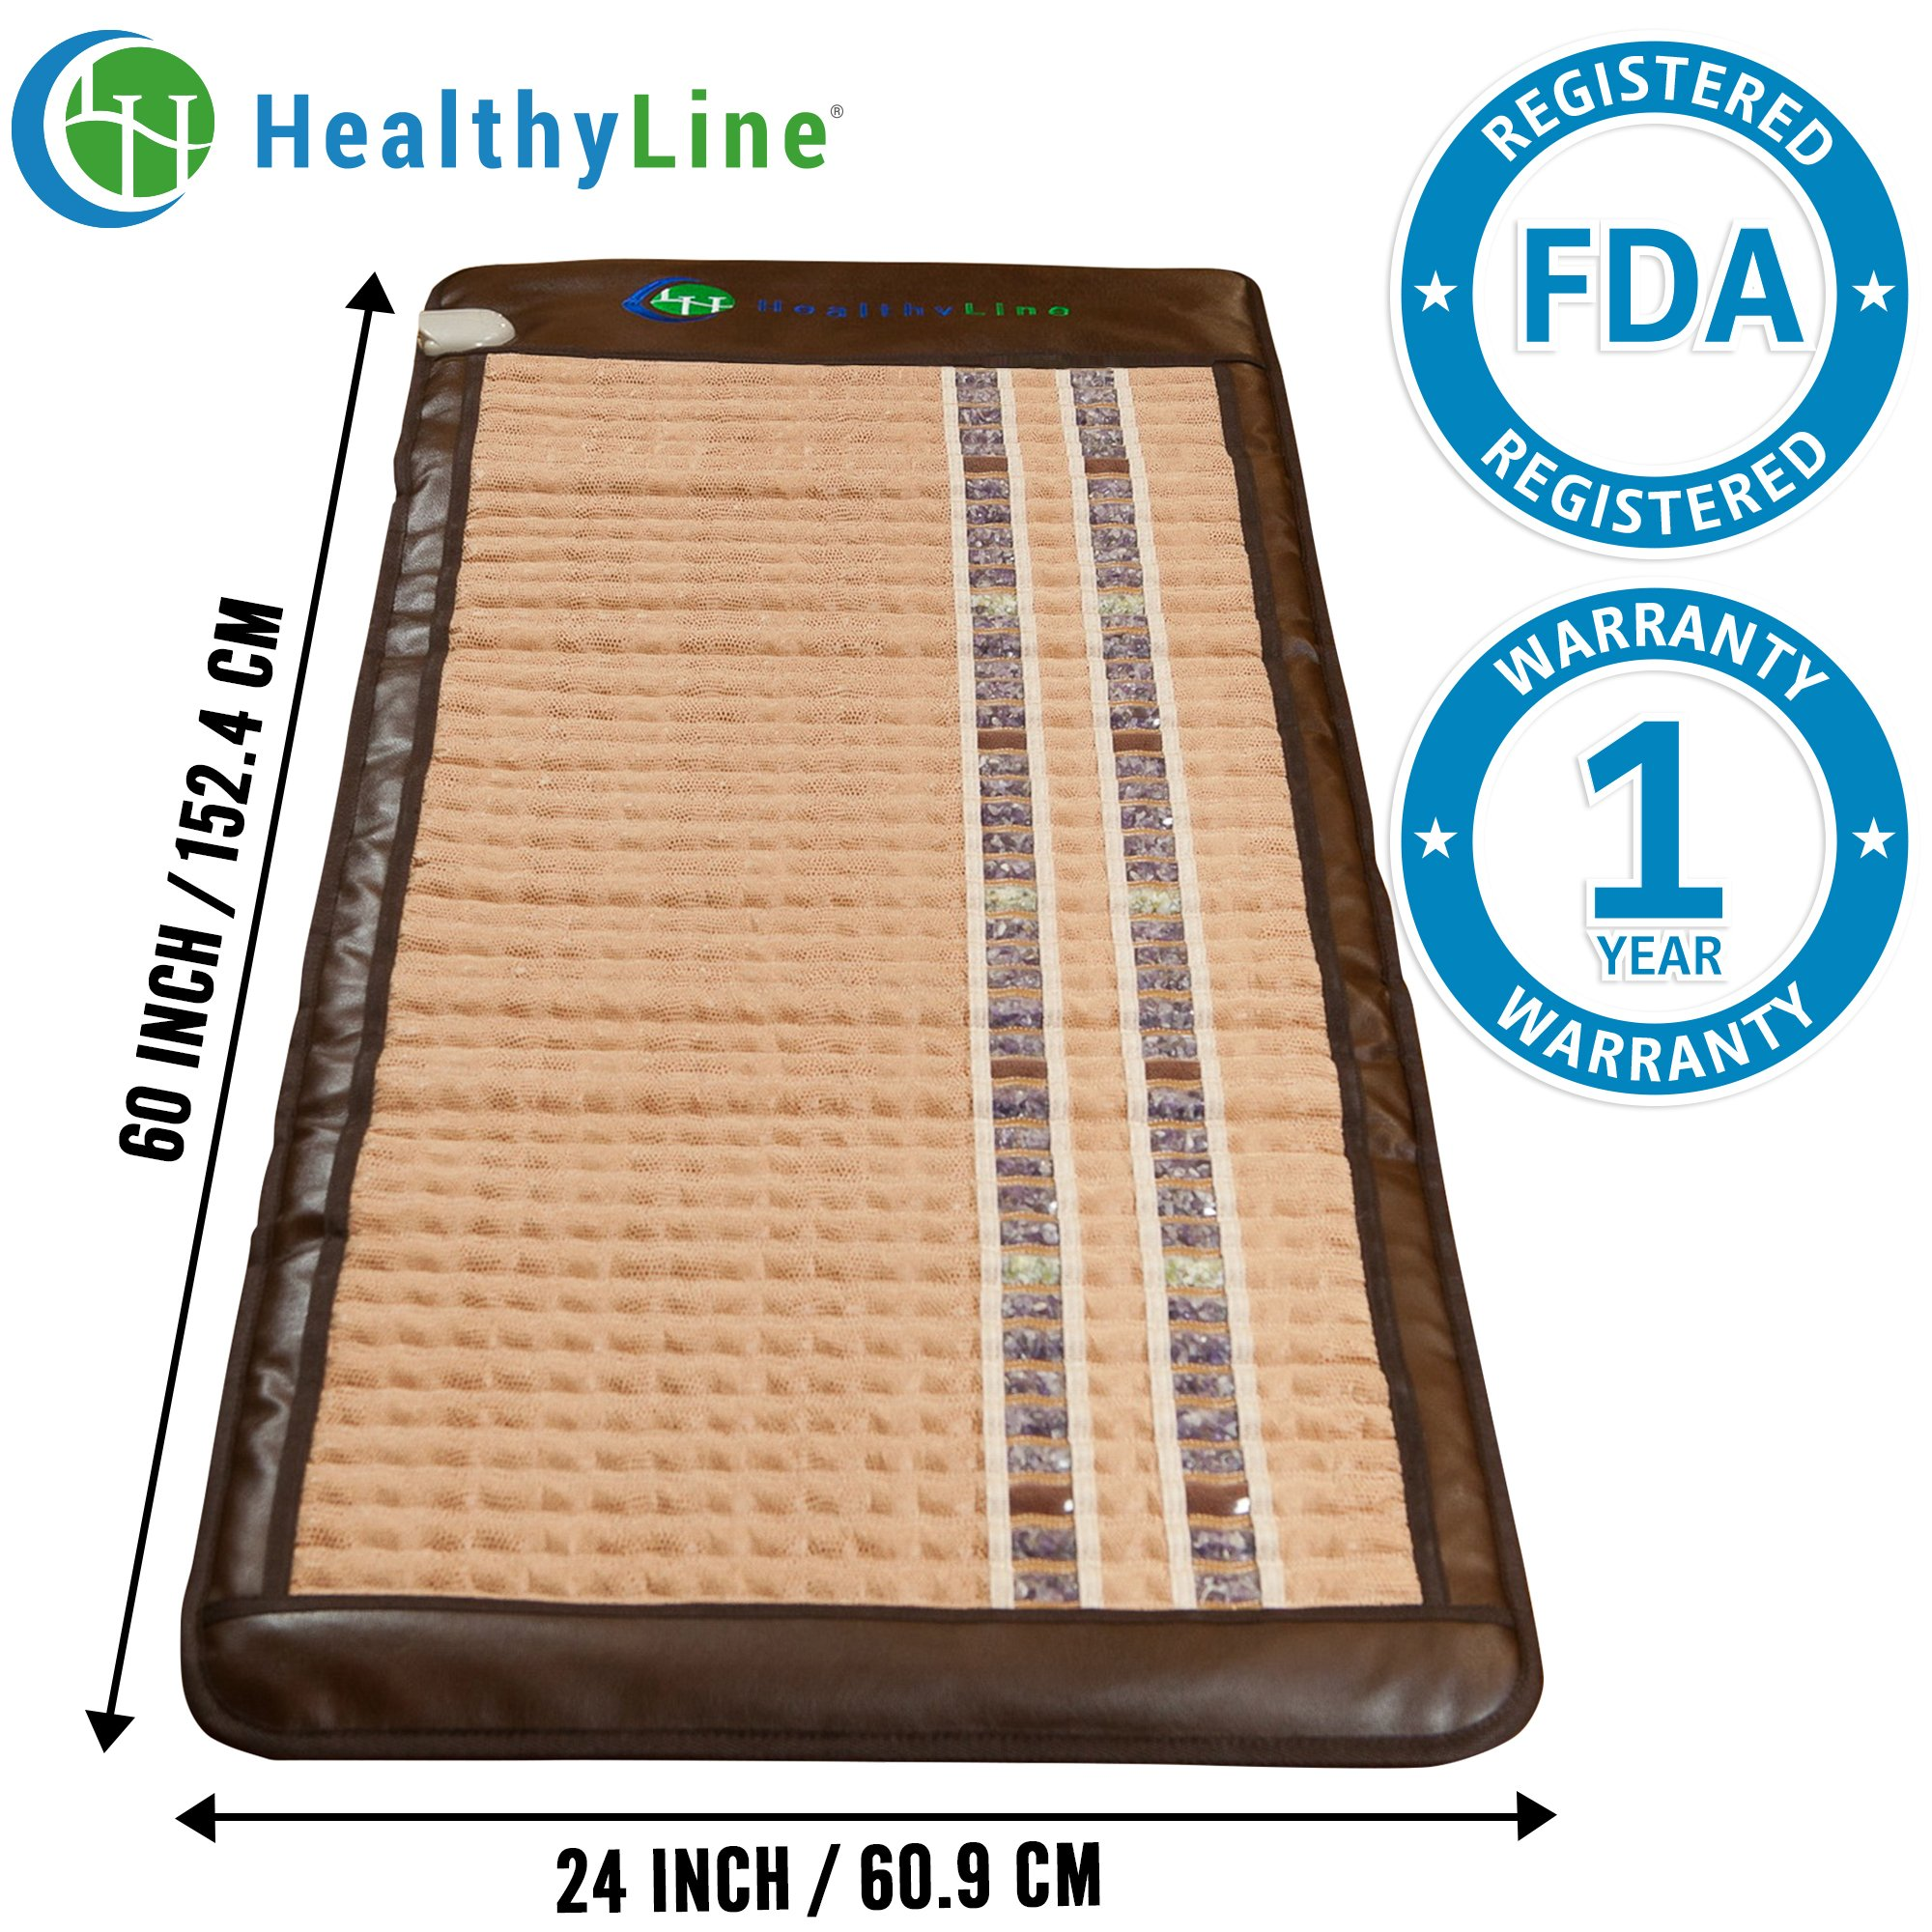 HealthyLine Infrared Heating Mat (Soft & Flexible)|TAJ, Natural Amethyst, Jade & Tourmaline Ceramic, (Full-Body) 60″ x 24″ |Relieve Pain, Sore Muscles, Arthritis and Injury Recovery |US FDA by HealthyLine